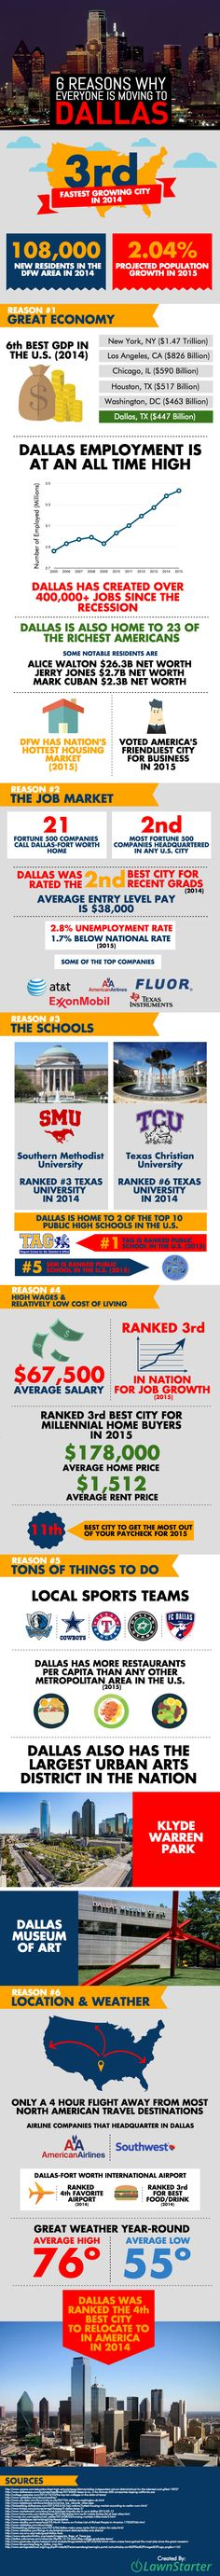 6 Reasons Why Everyone Is Moving To Dallas Texas by Lawnstarter